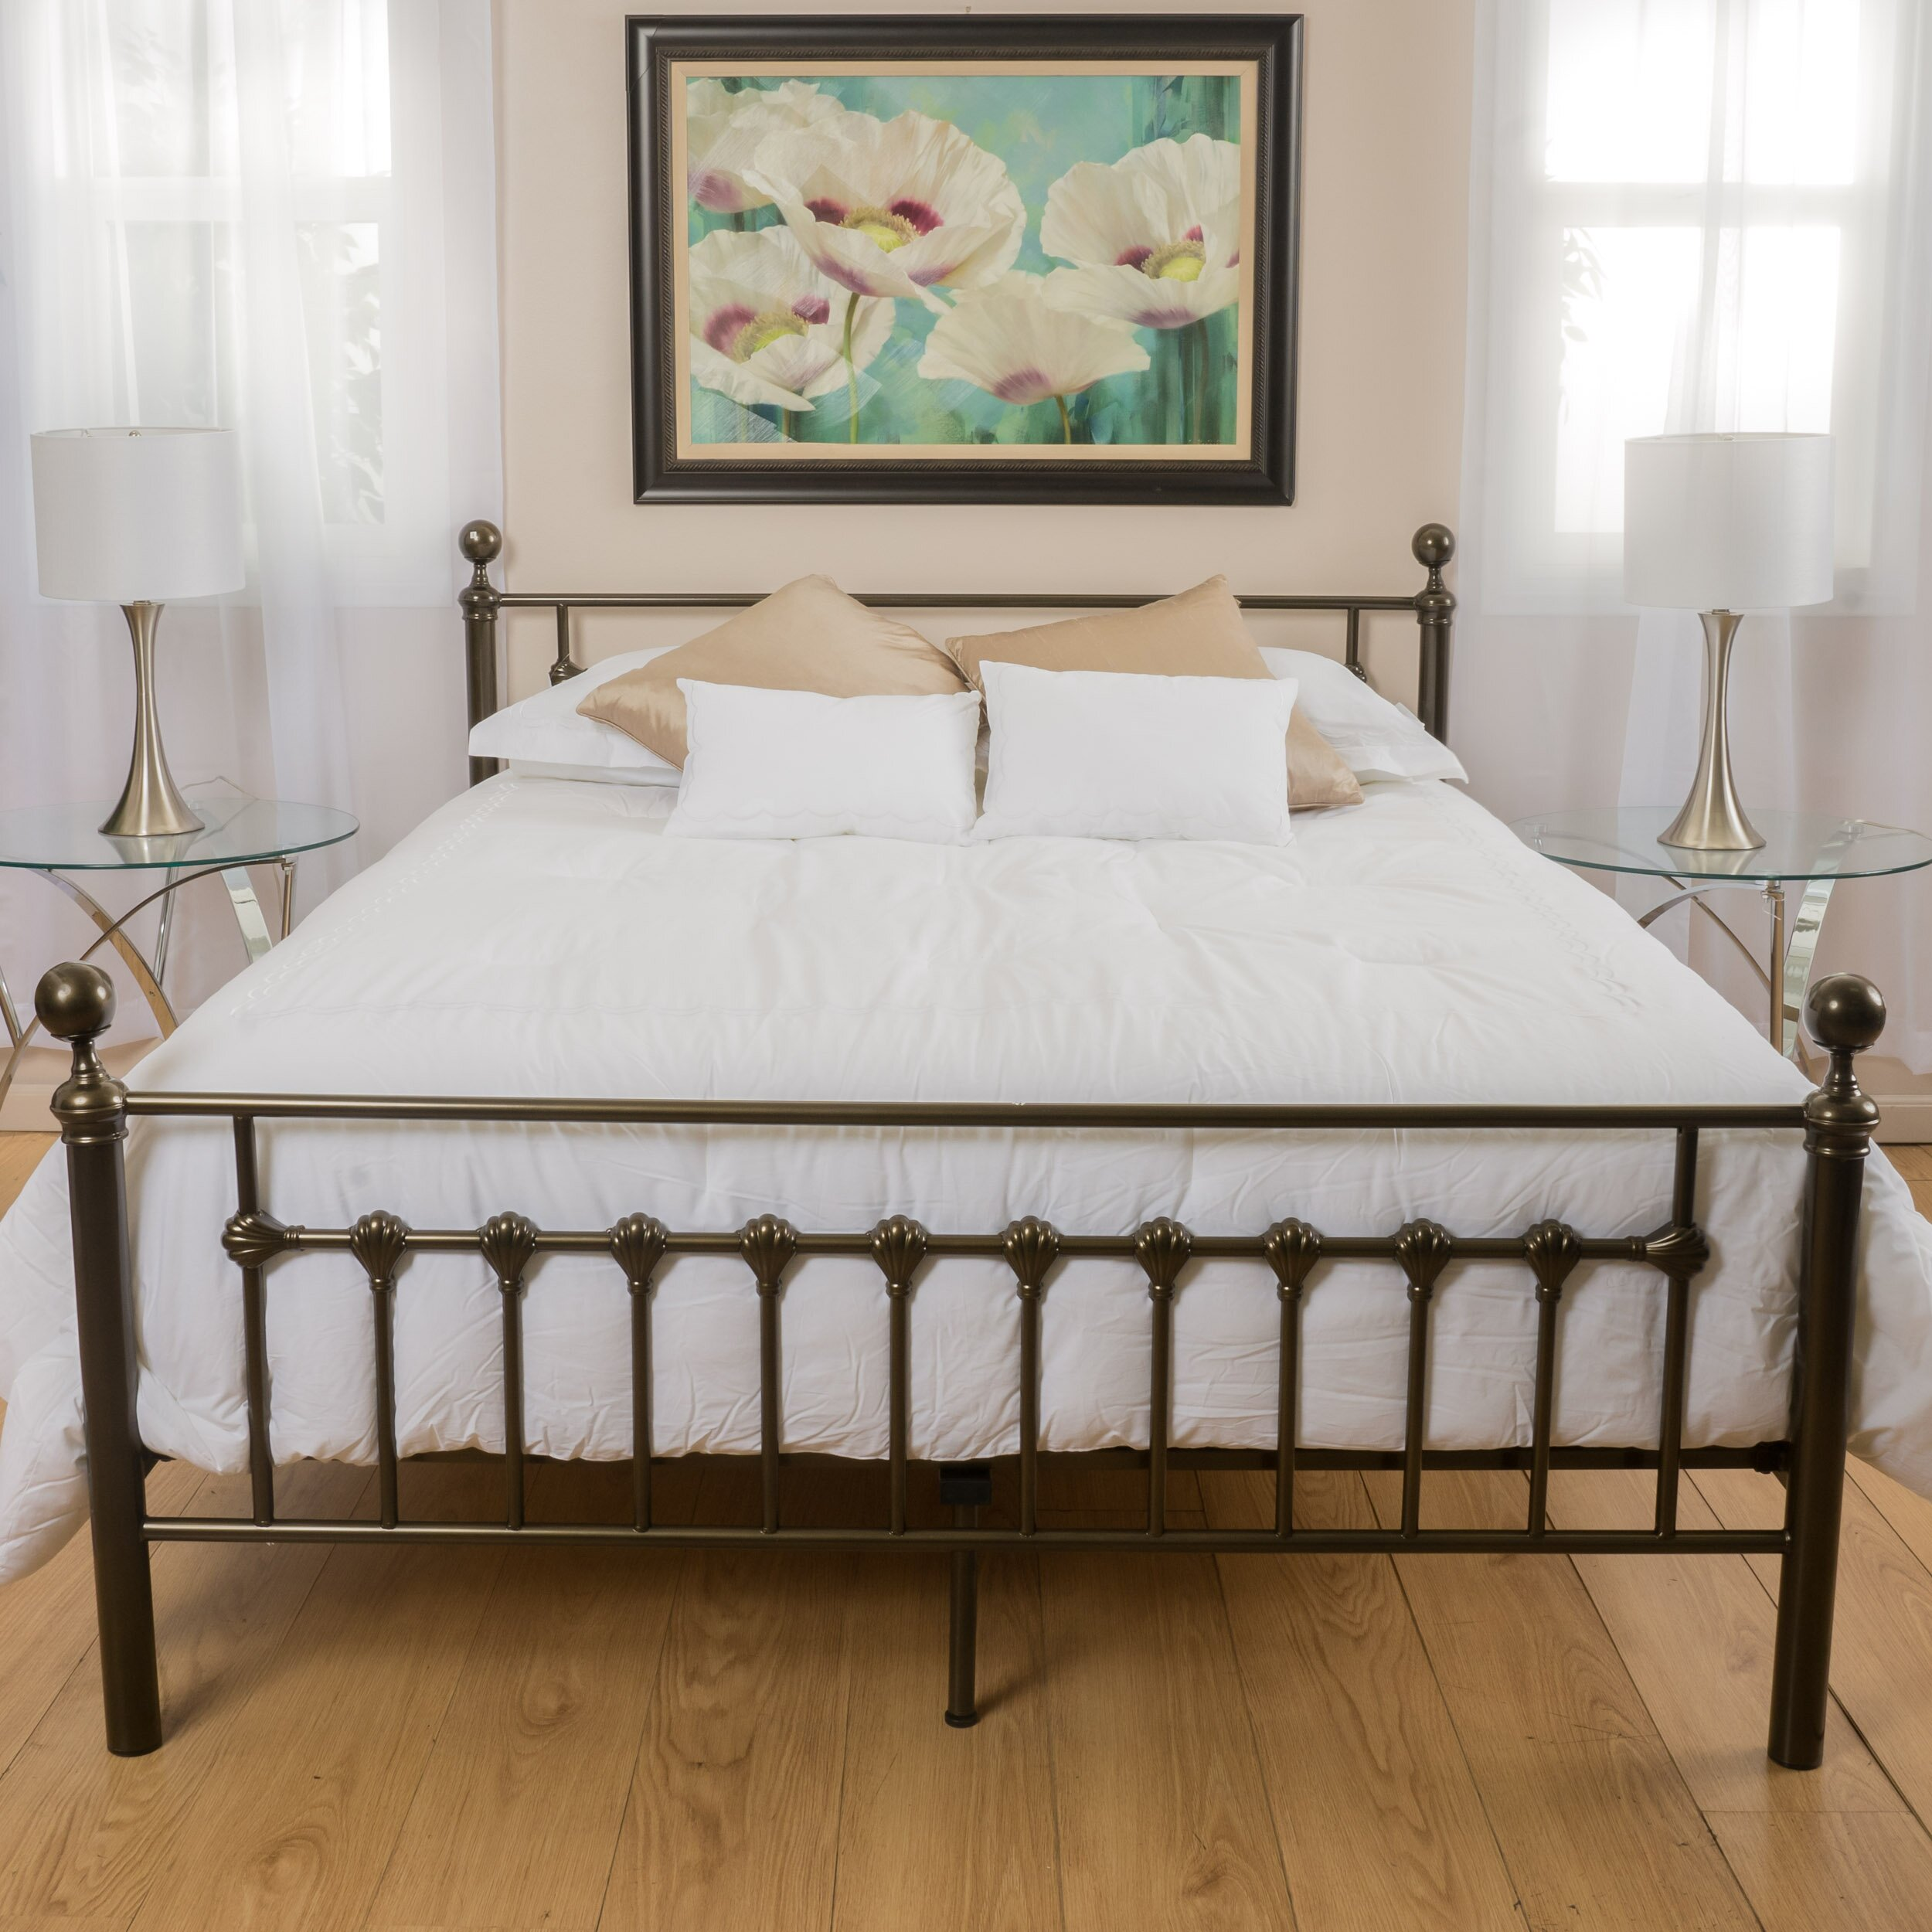 charlton home keswick copper gold bed frame reviews 11703 | keswick copper gold bed frame chlh1406